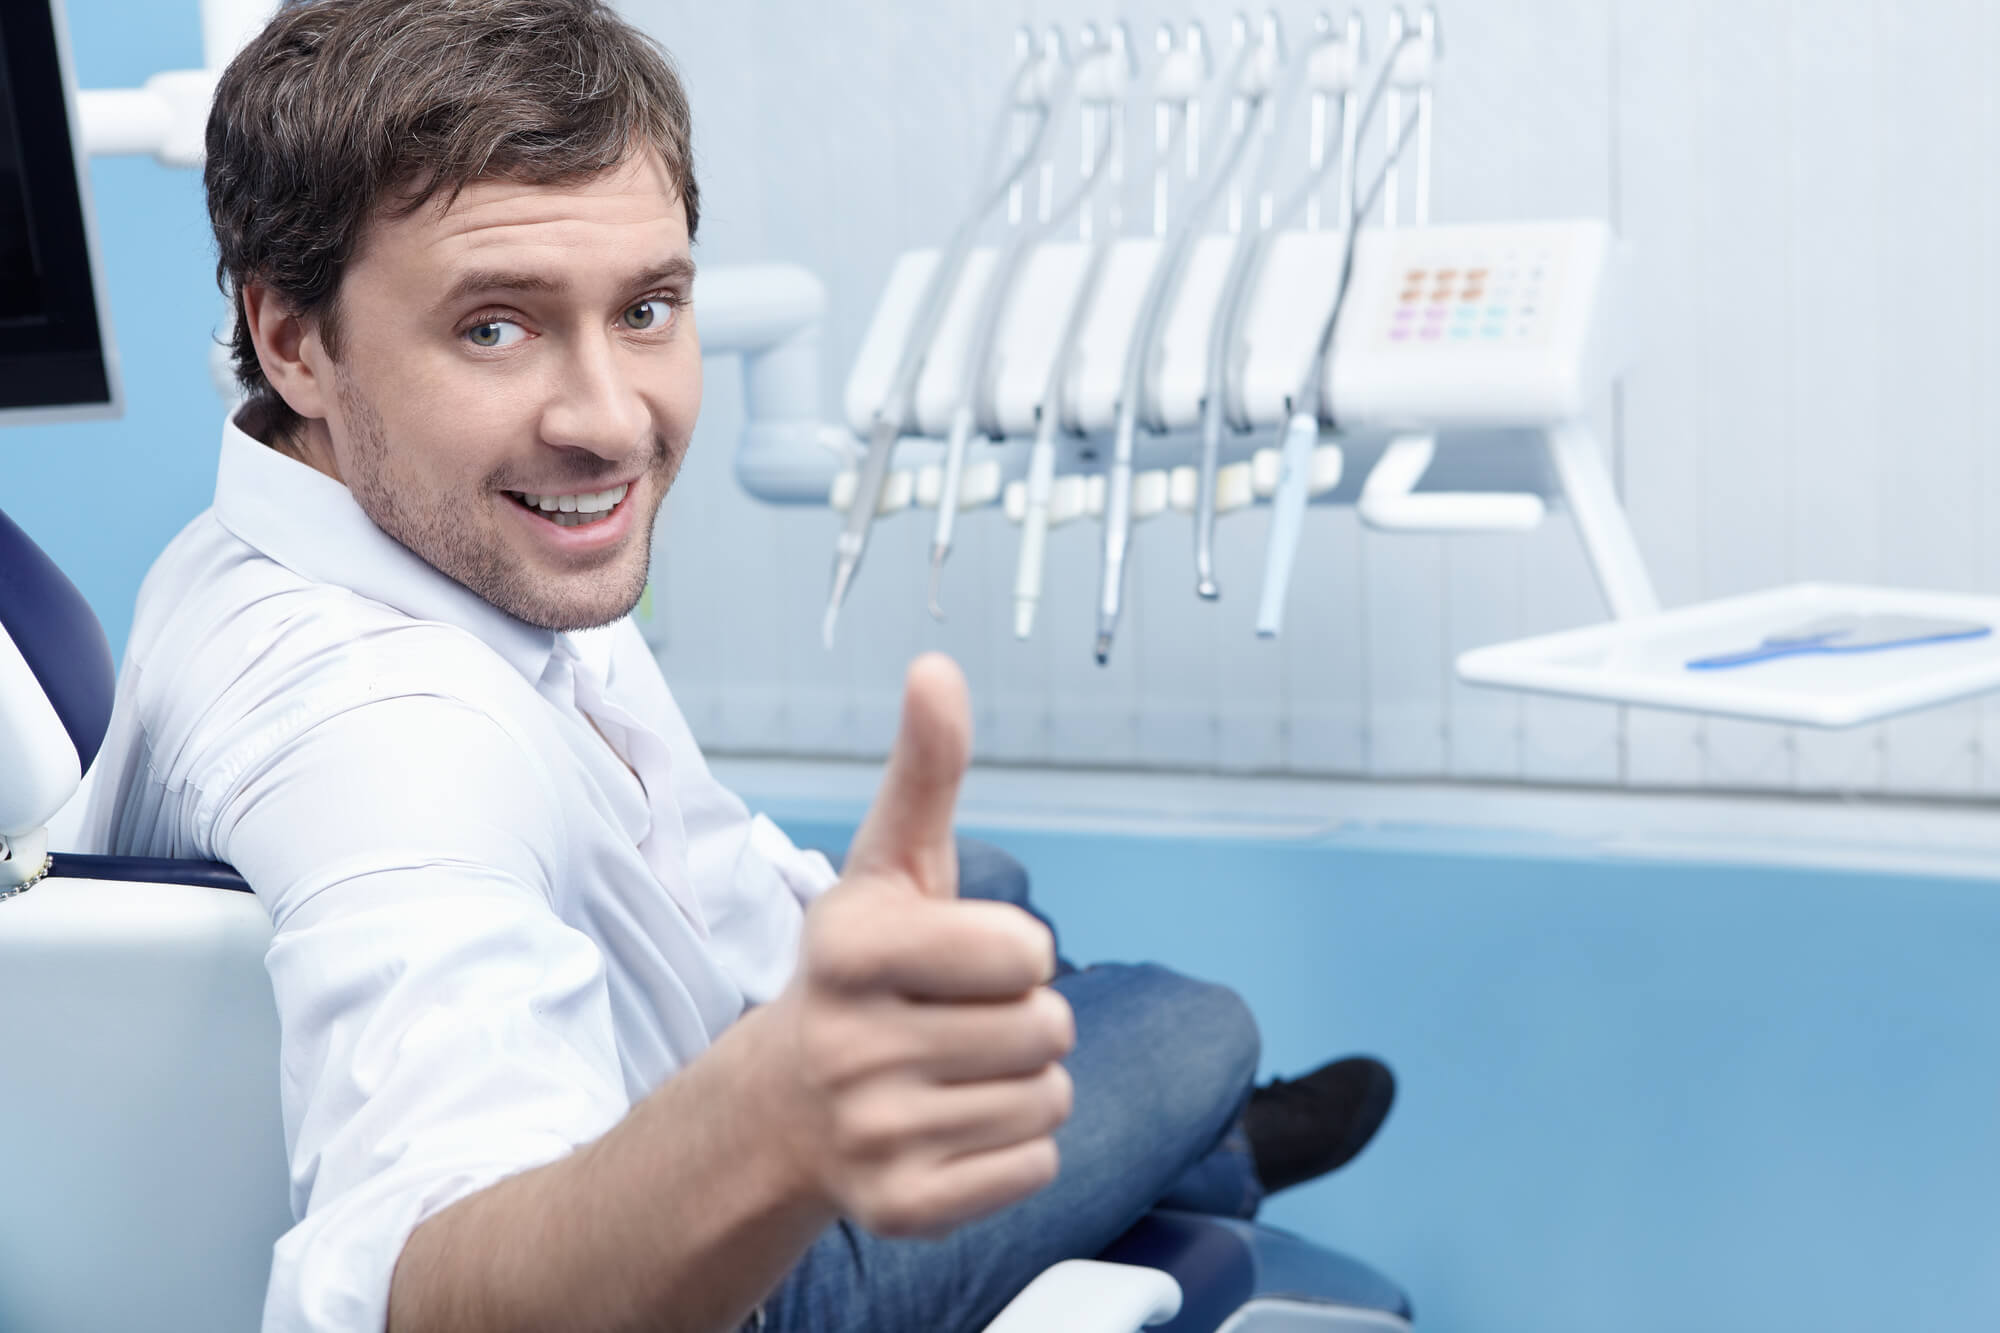 where is the best dentist boynton beach?